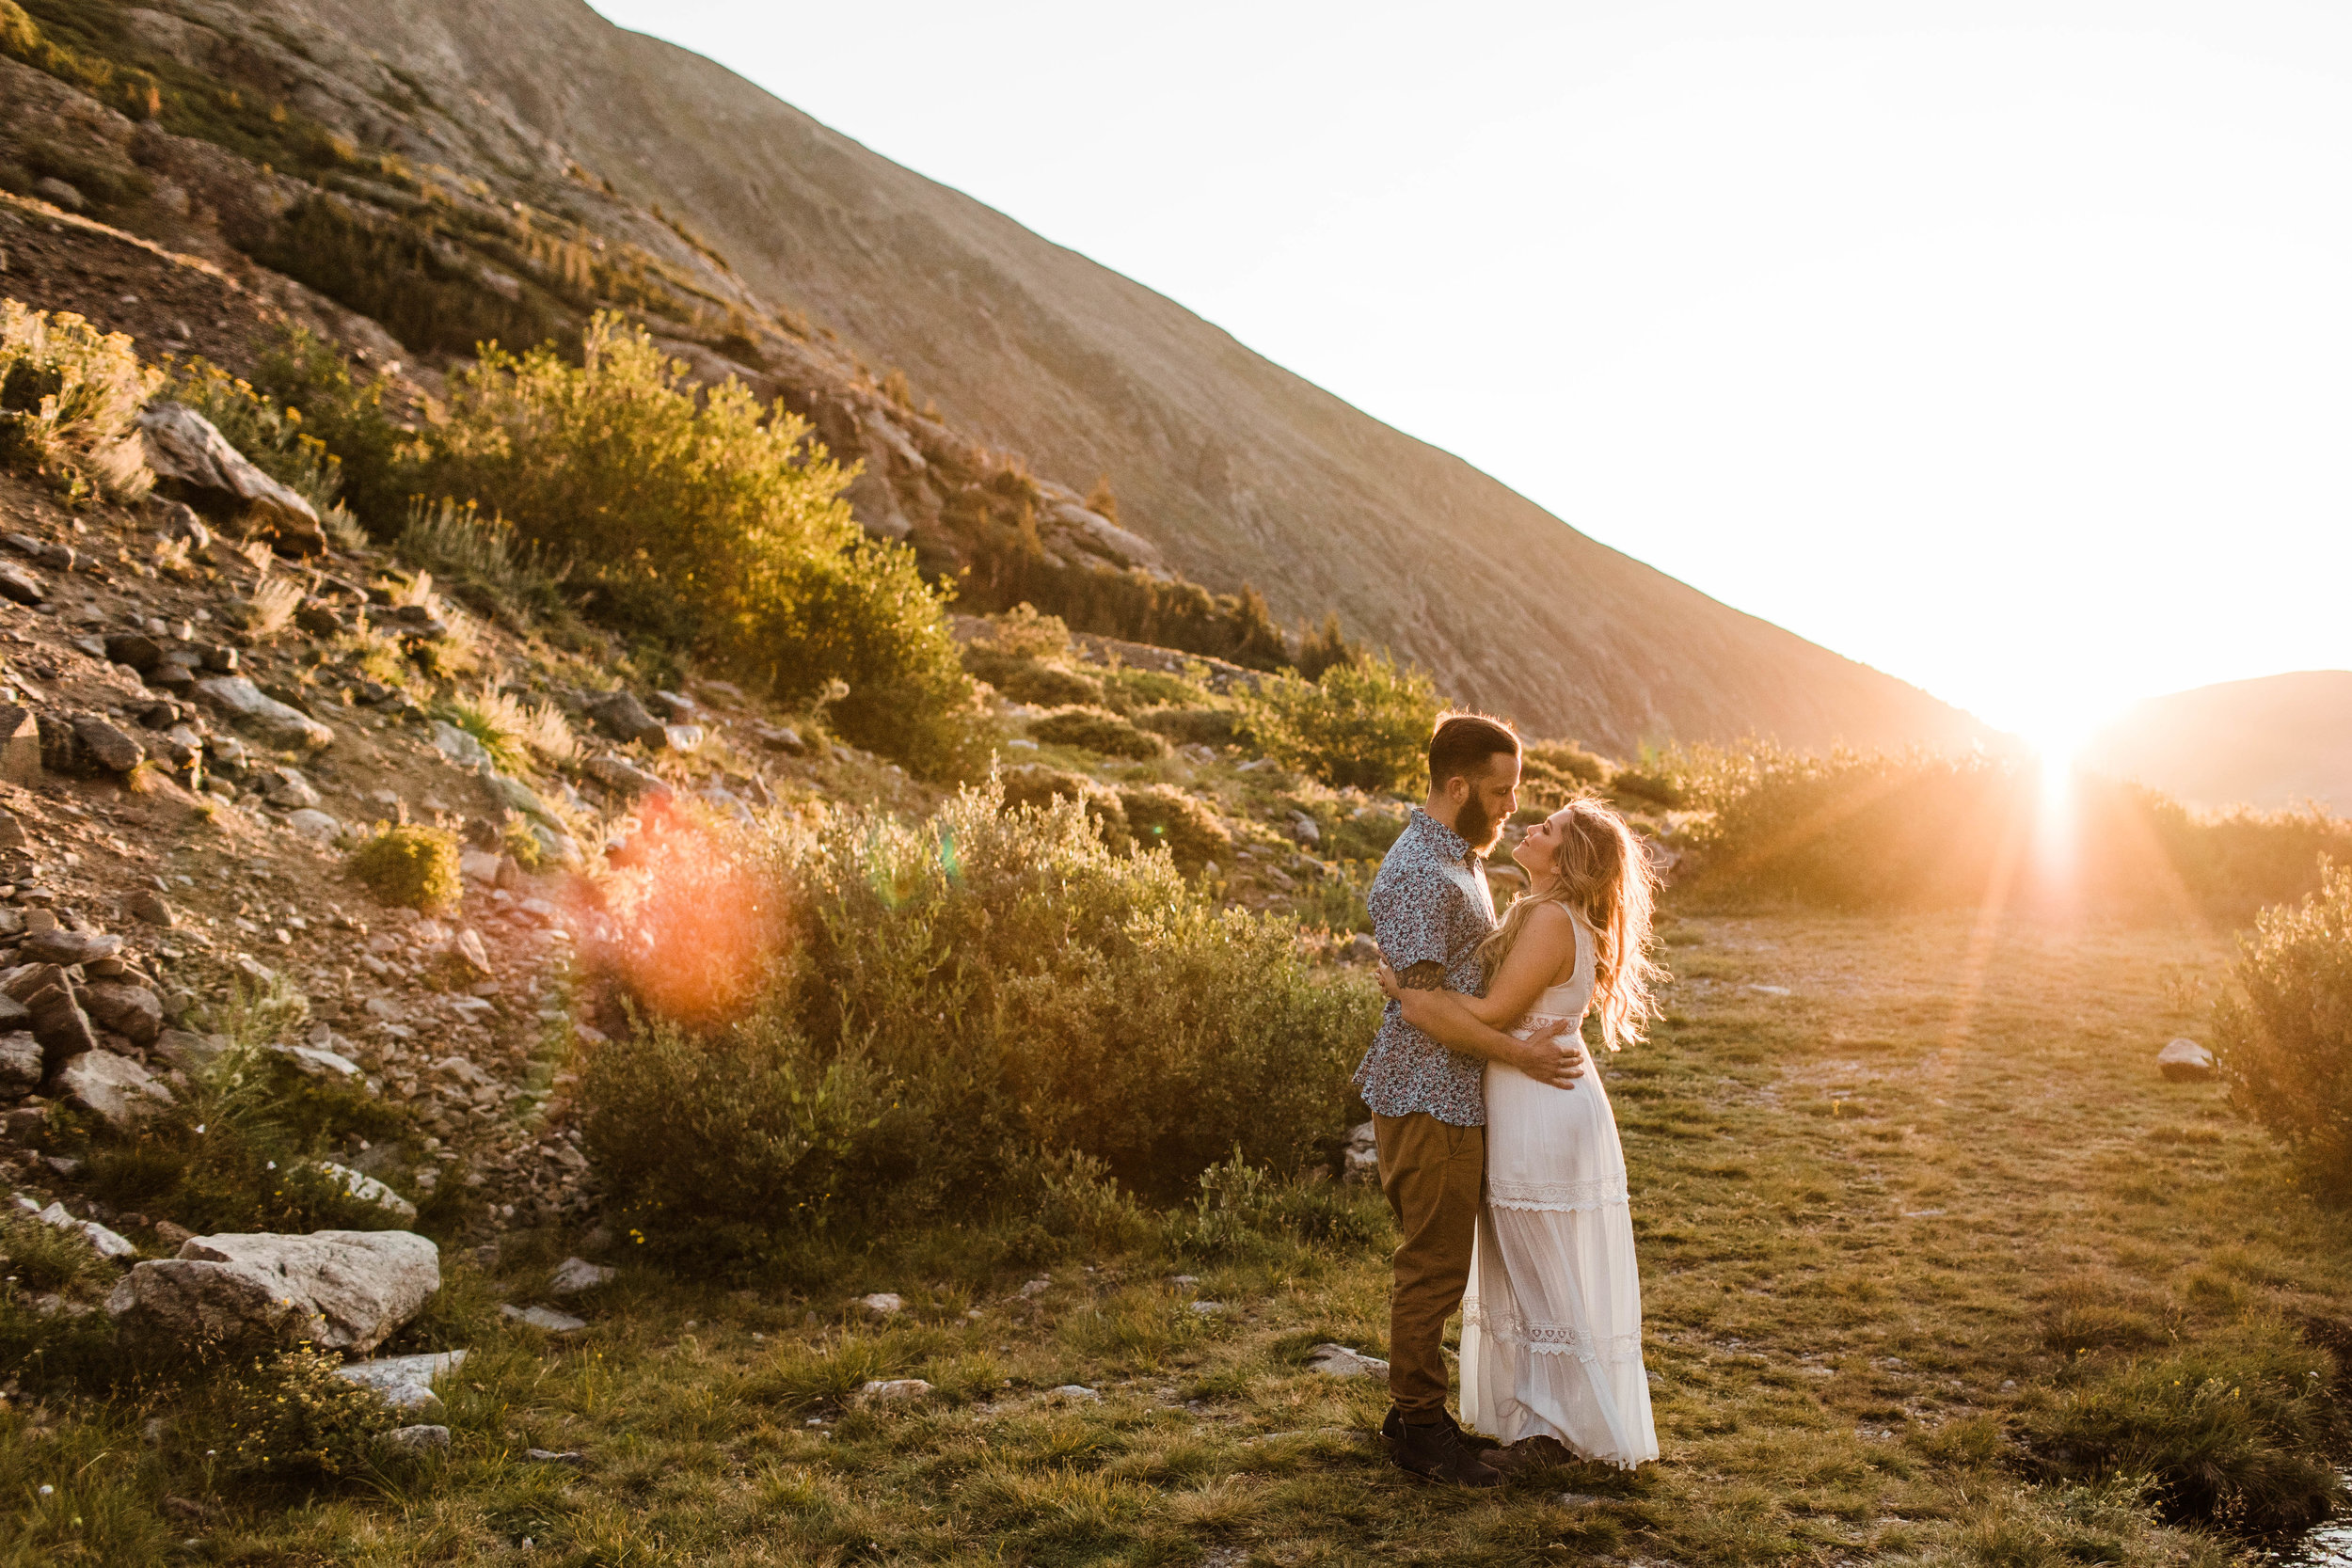 sunrise Breckenridge elopement style photos during an engaged couple's mountain adventure engagement photos | Breckenridge Colorado wedding photographers